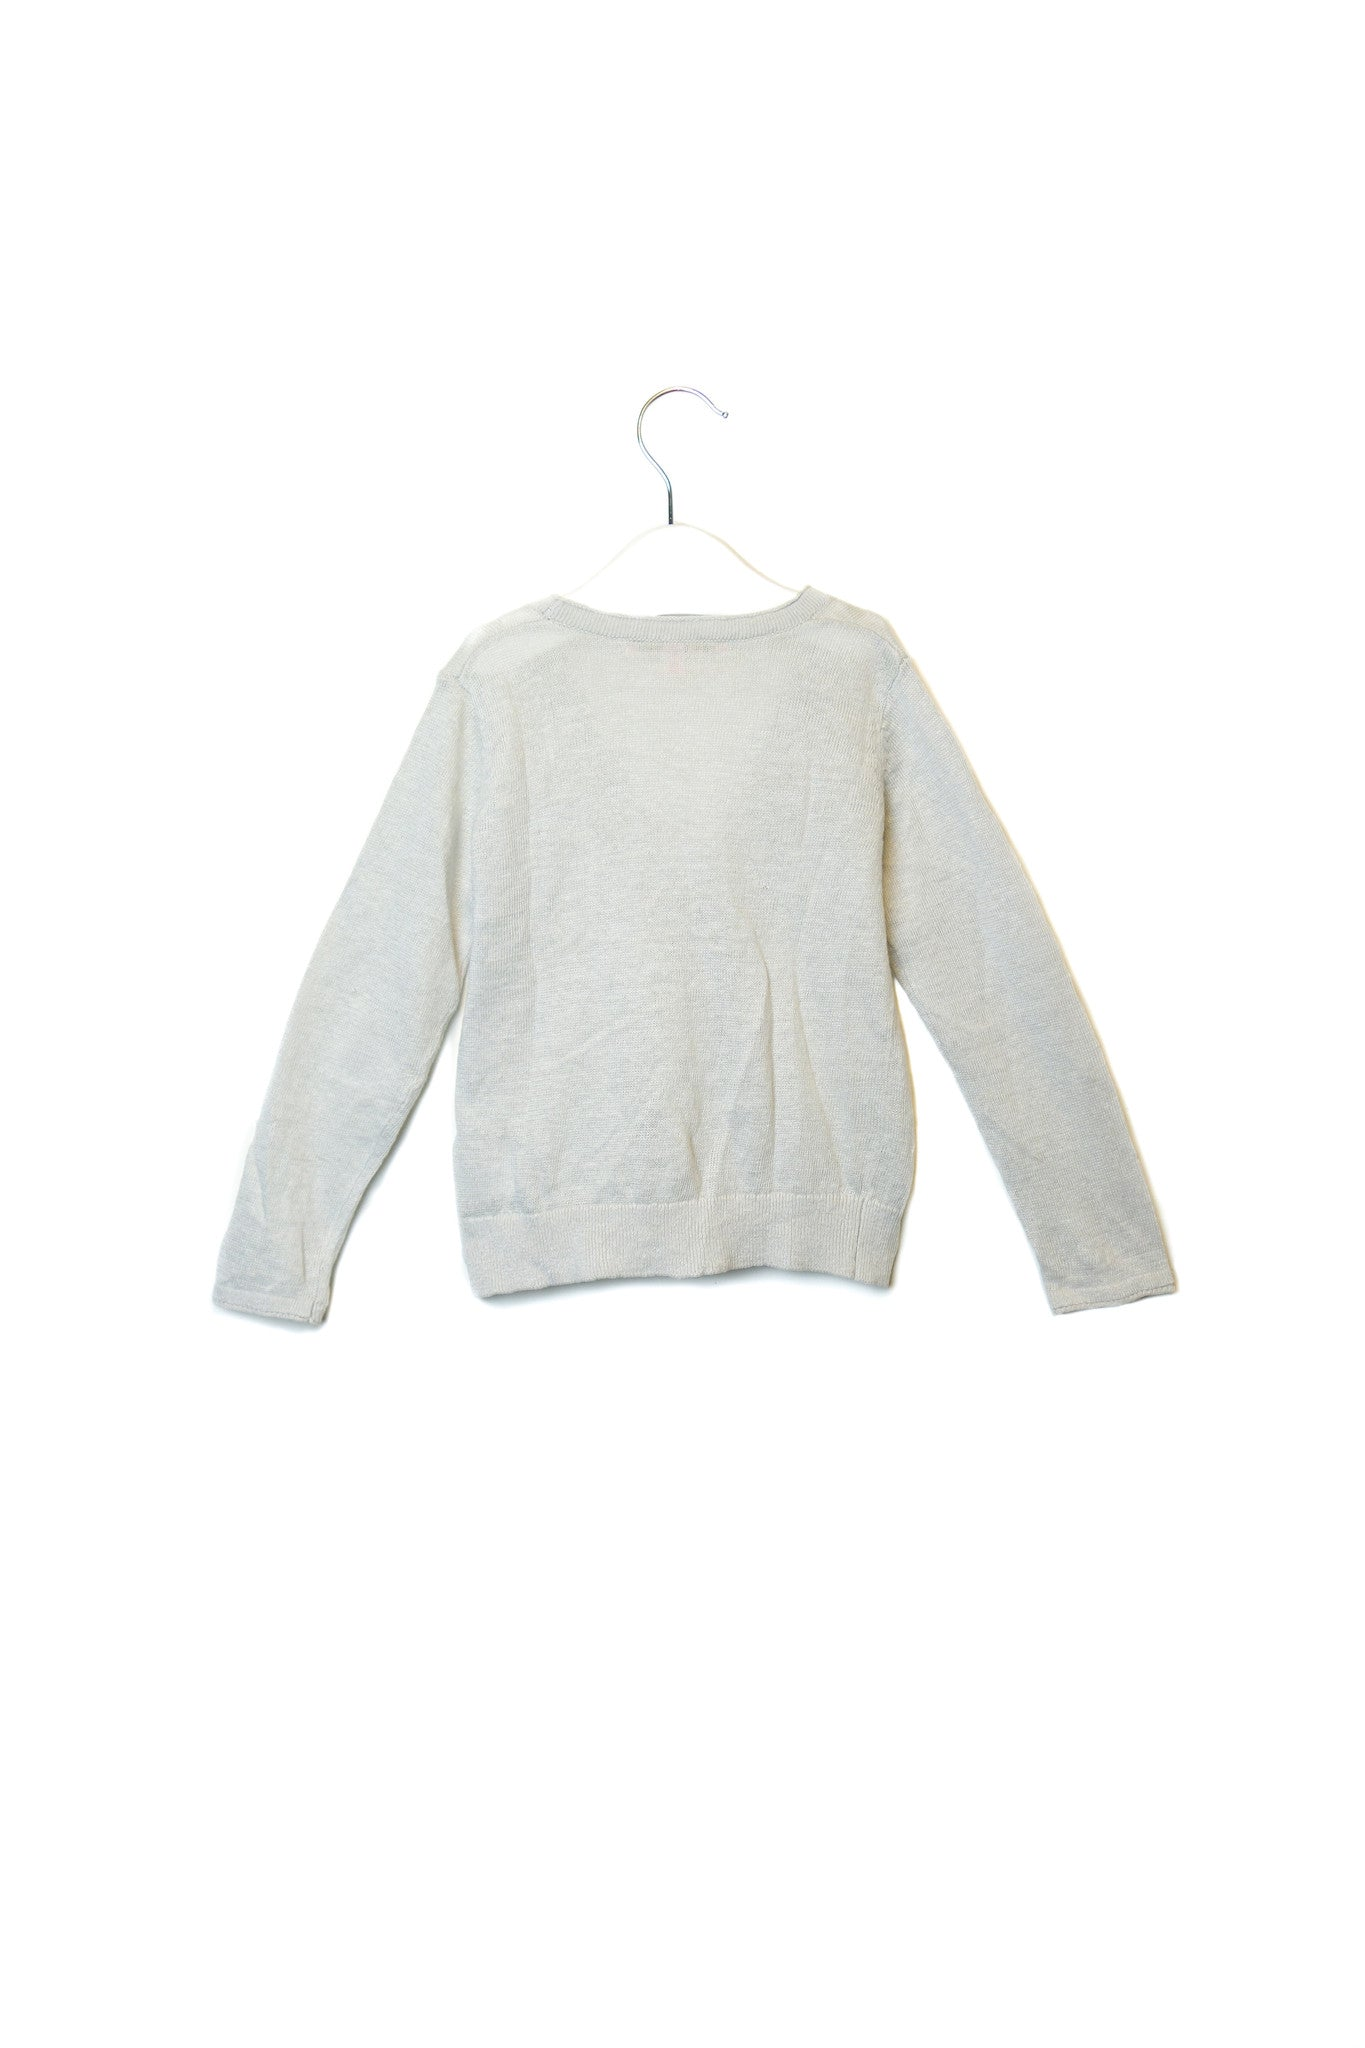 10001788 Bonpoint Kids~Cardigan 3T at Retykle